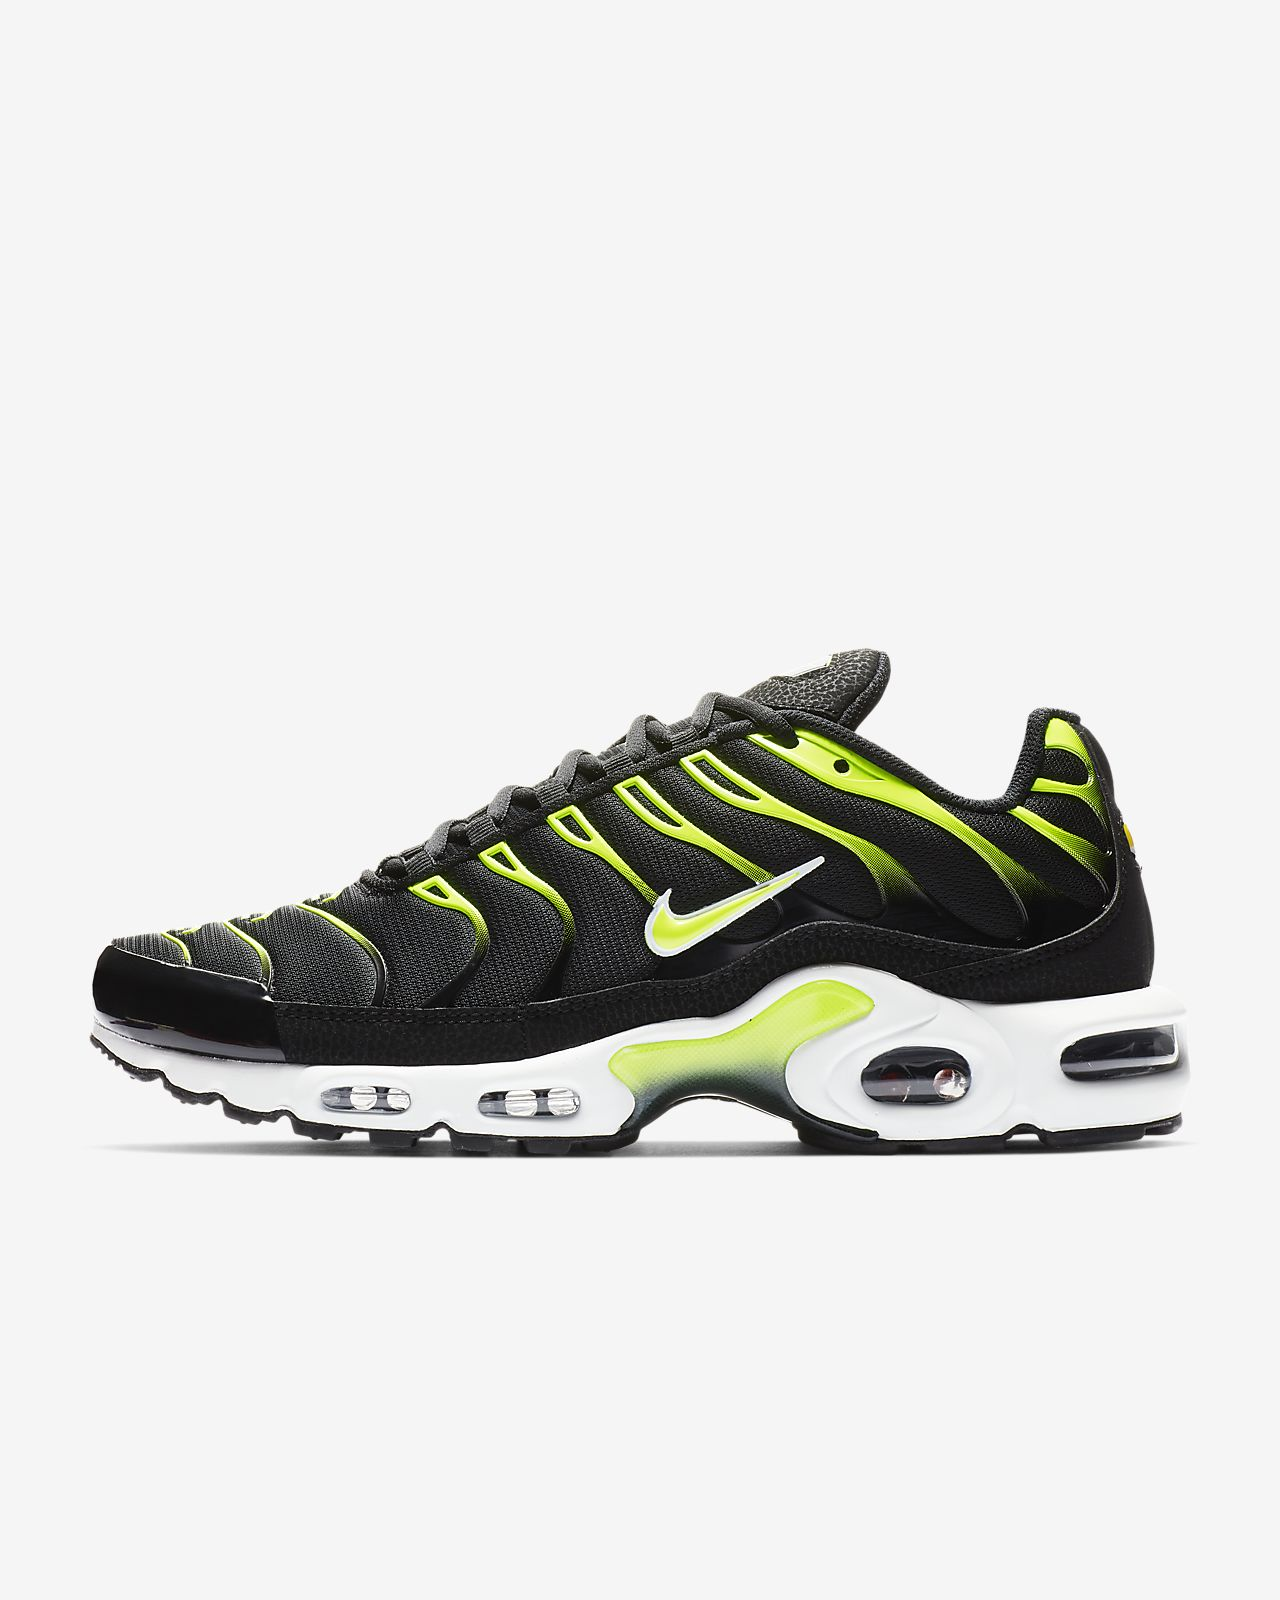 separation shoes ba3b6 14ffd Nike Air Max Plus